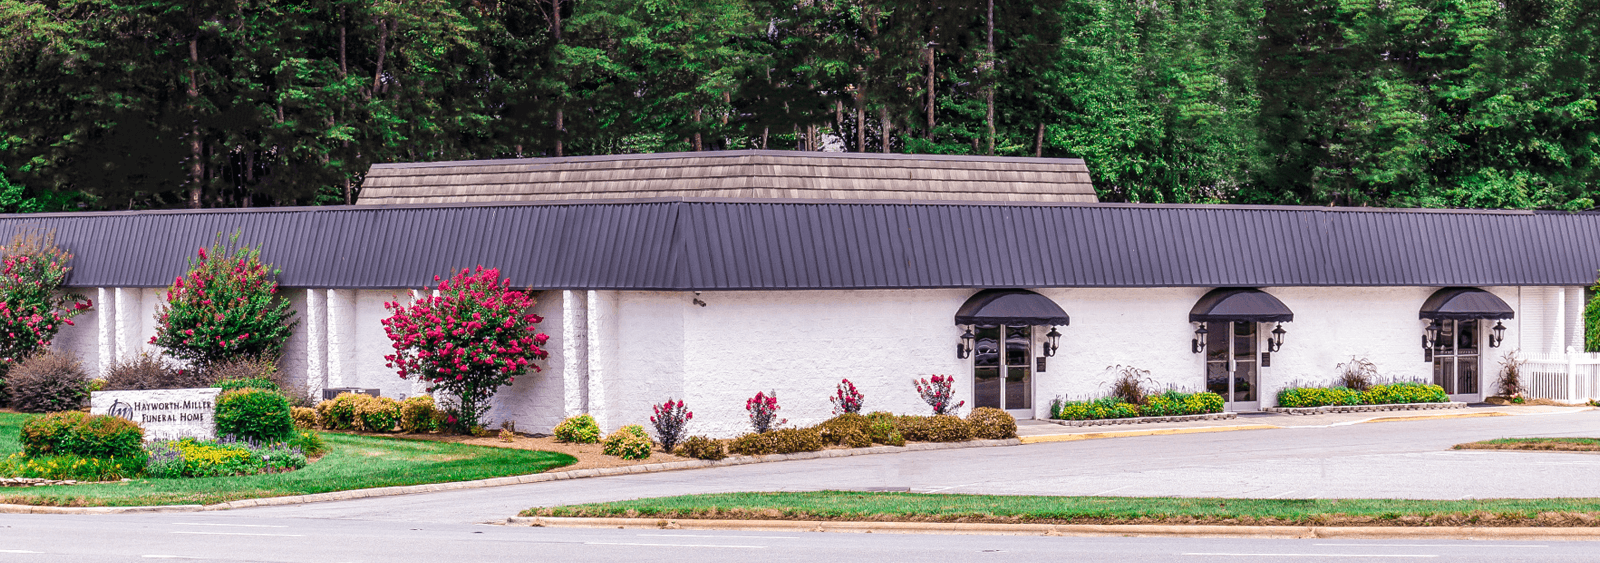 Hayworth Miller Funeral Homes And Cremation